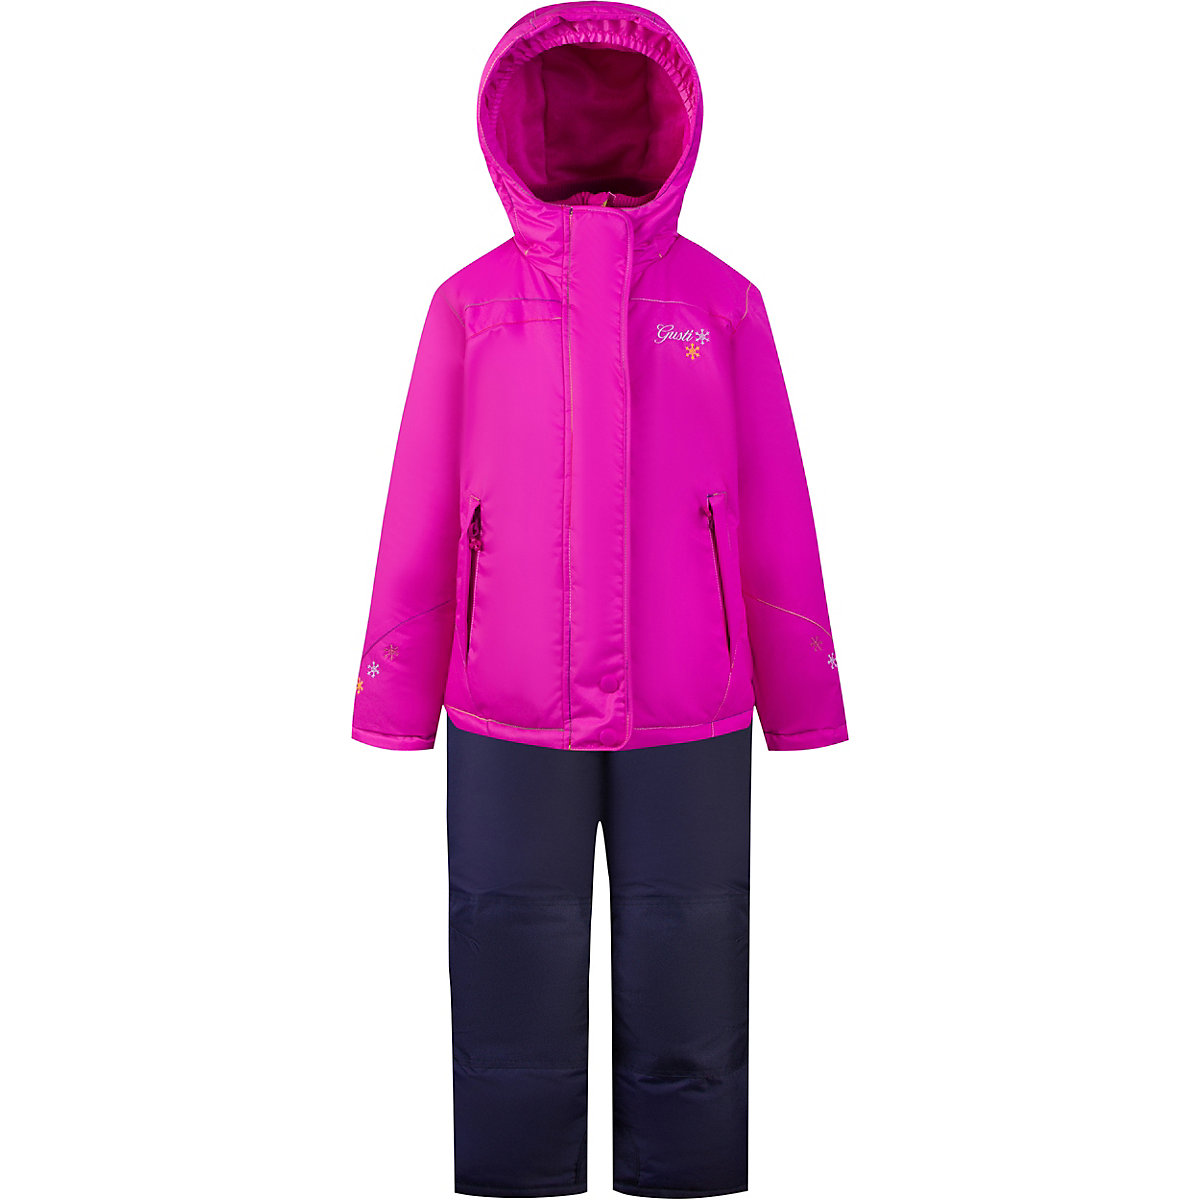 GUSTI Children's Sets 9511937 clothing for girls set dress winter clothes girl kids wear girls clothing sets sports suits for girls clothing children sports wear spring autumn kids tracksuits